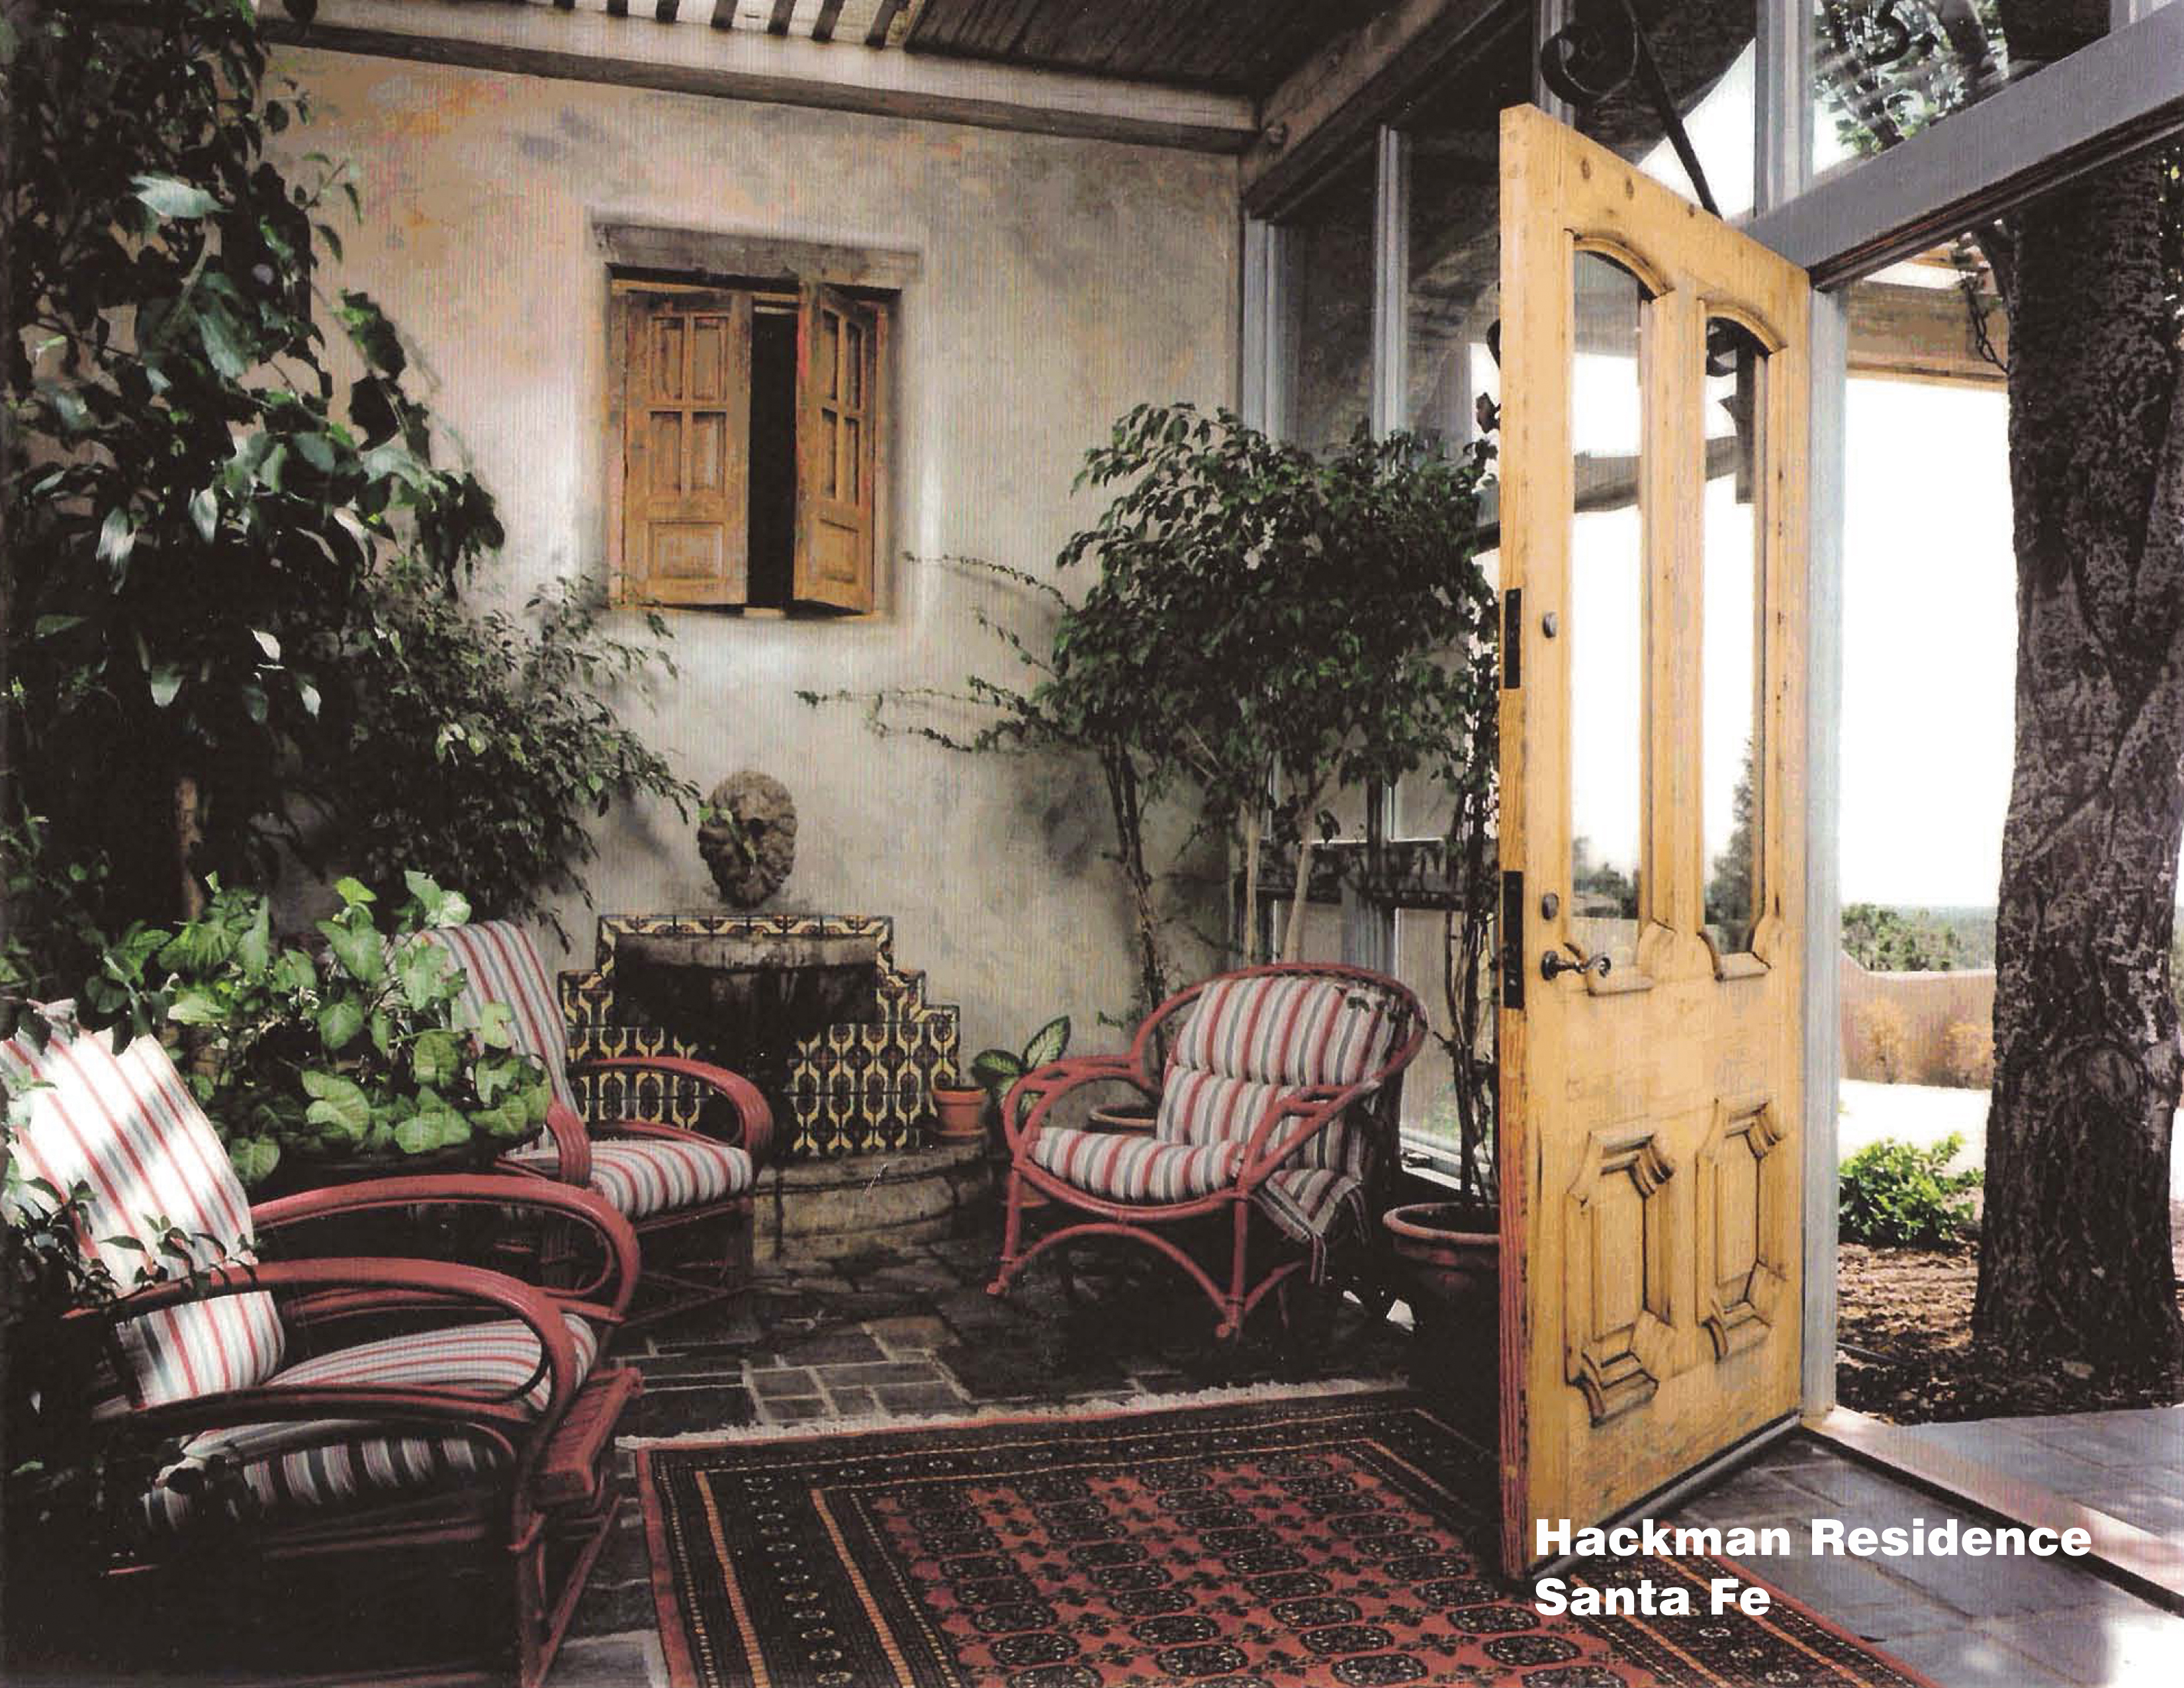 Hackman Residence - Entry Hall